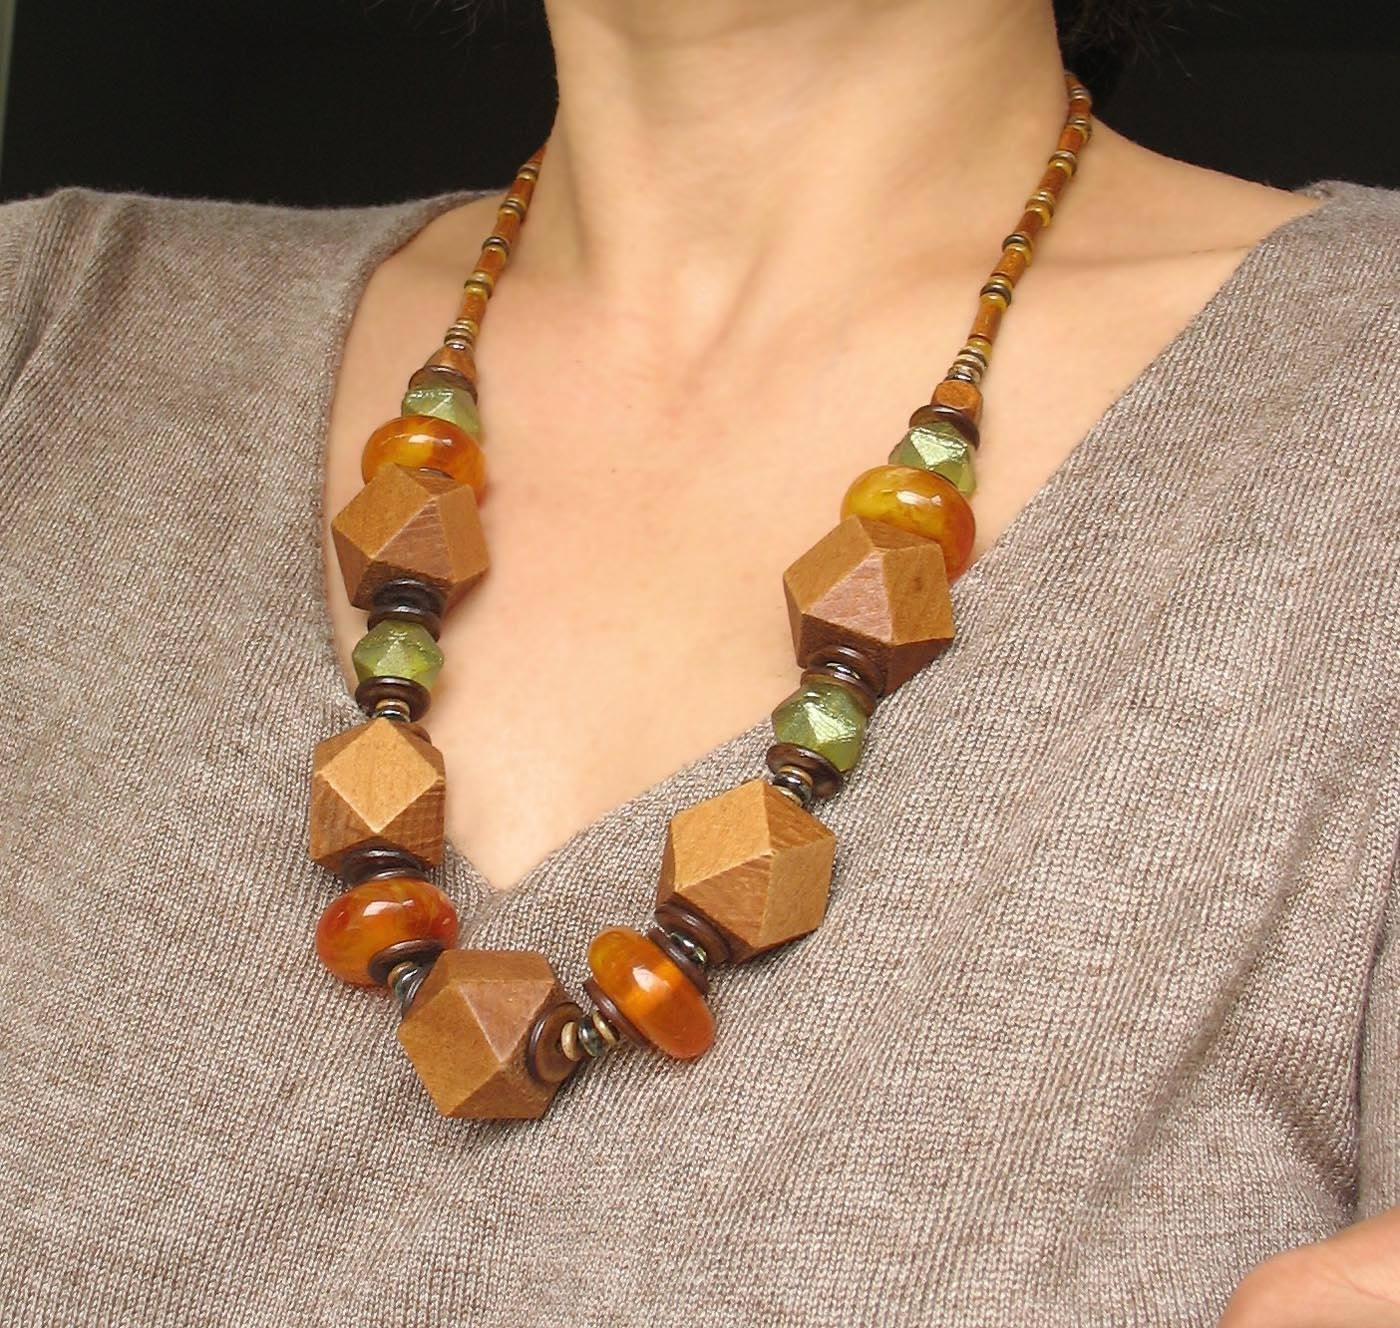 Necklace Beads: Wooden Necklace Geometric Large Bead Necklace Statement